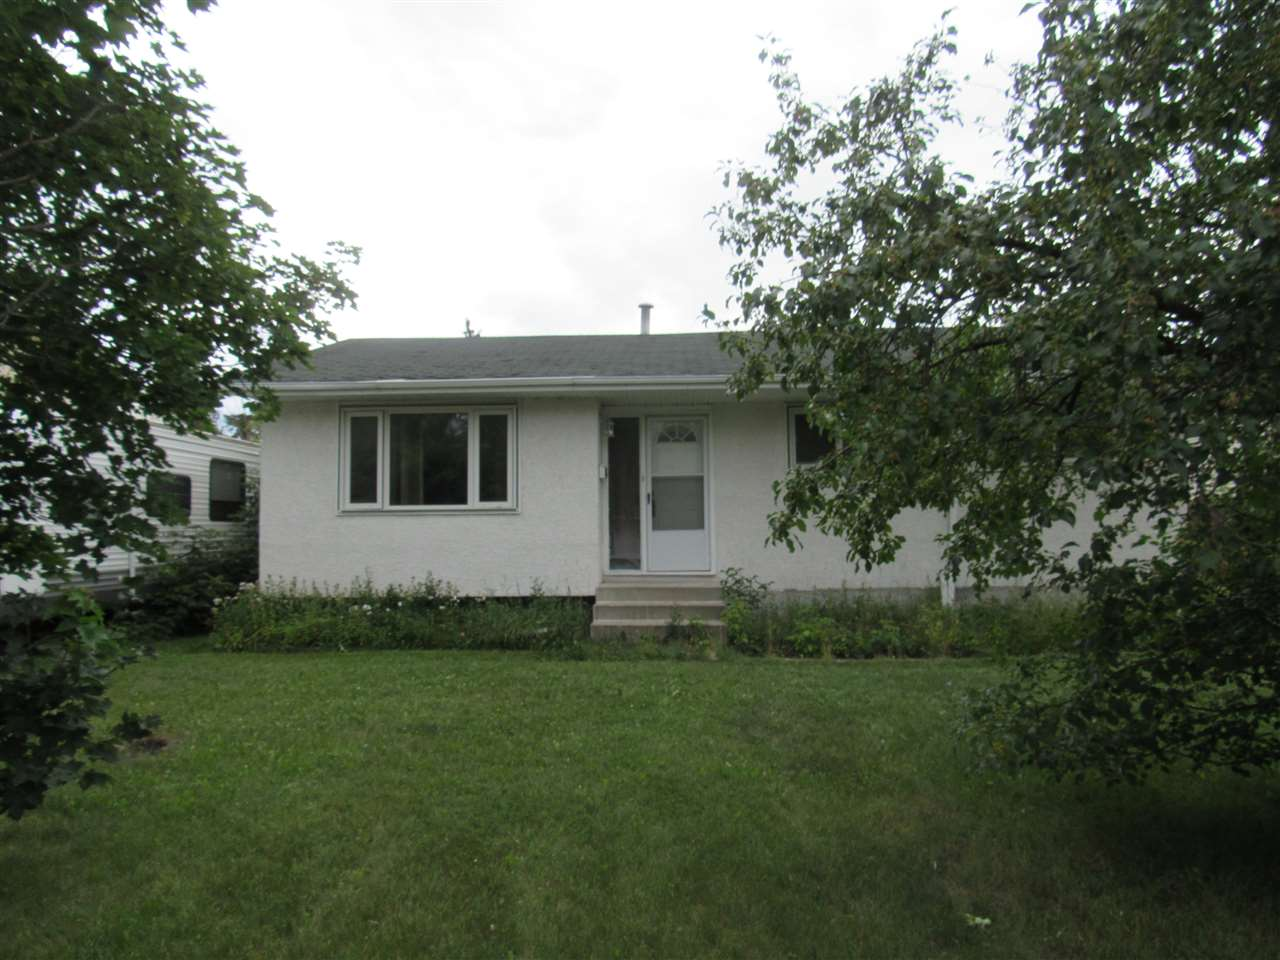 Recently renovated 3 bedroom bungalow backing onto park and playground and within  walking distance to elementary school. Newer windows, newer exterior stucco, newer concrete driveway , sidewalk and furnace. Cosy living room with laminated flooring. Open kitchen with newer maple cabinets and corner sink.l Basement has rear door entrance  and with  fully finished with laminated flooring featuring huge family room, den , 2 bedrooms and 4 pcs bath with soaker tub and pedestal sink. The 5th bedroom in basement has rough in for future in law suite. Other outstanding features including deck at rear, a  dog run, oversized 26x24 garage with 10' height ceiling and  shelves for storage. Quiet crescent location. Close to schools, bus ,shops and WEM. Purchase price including al appliances and 1 remote control for garage door opener. Quick possession. Ideal family home.